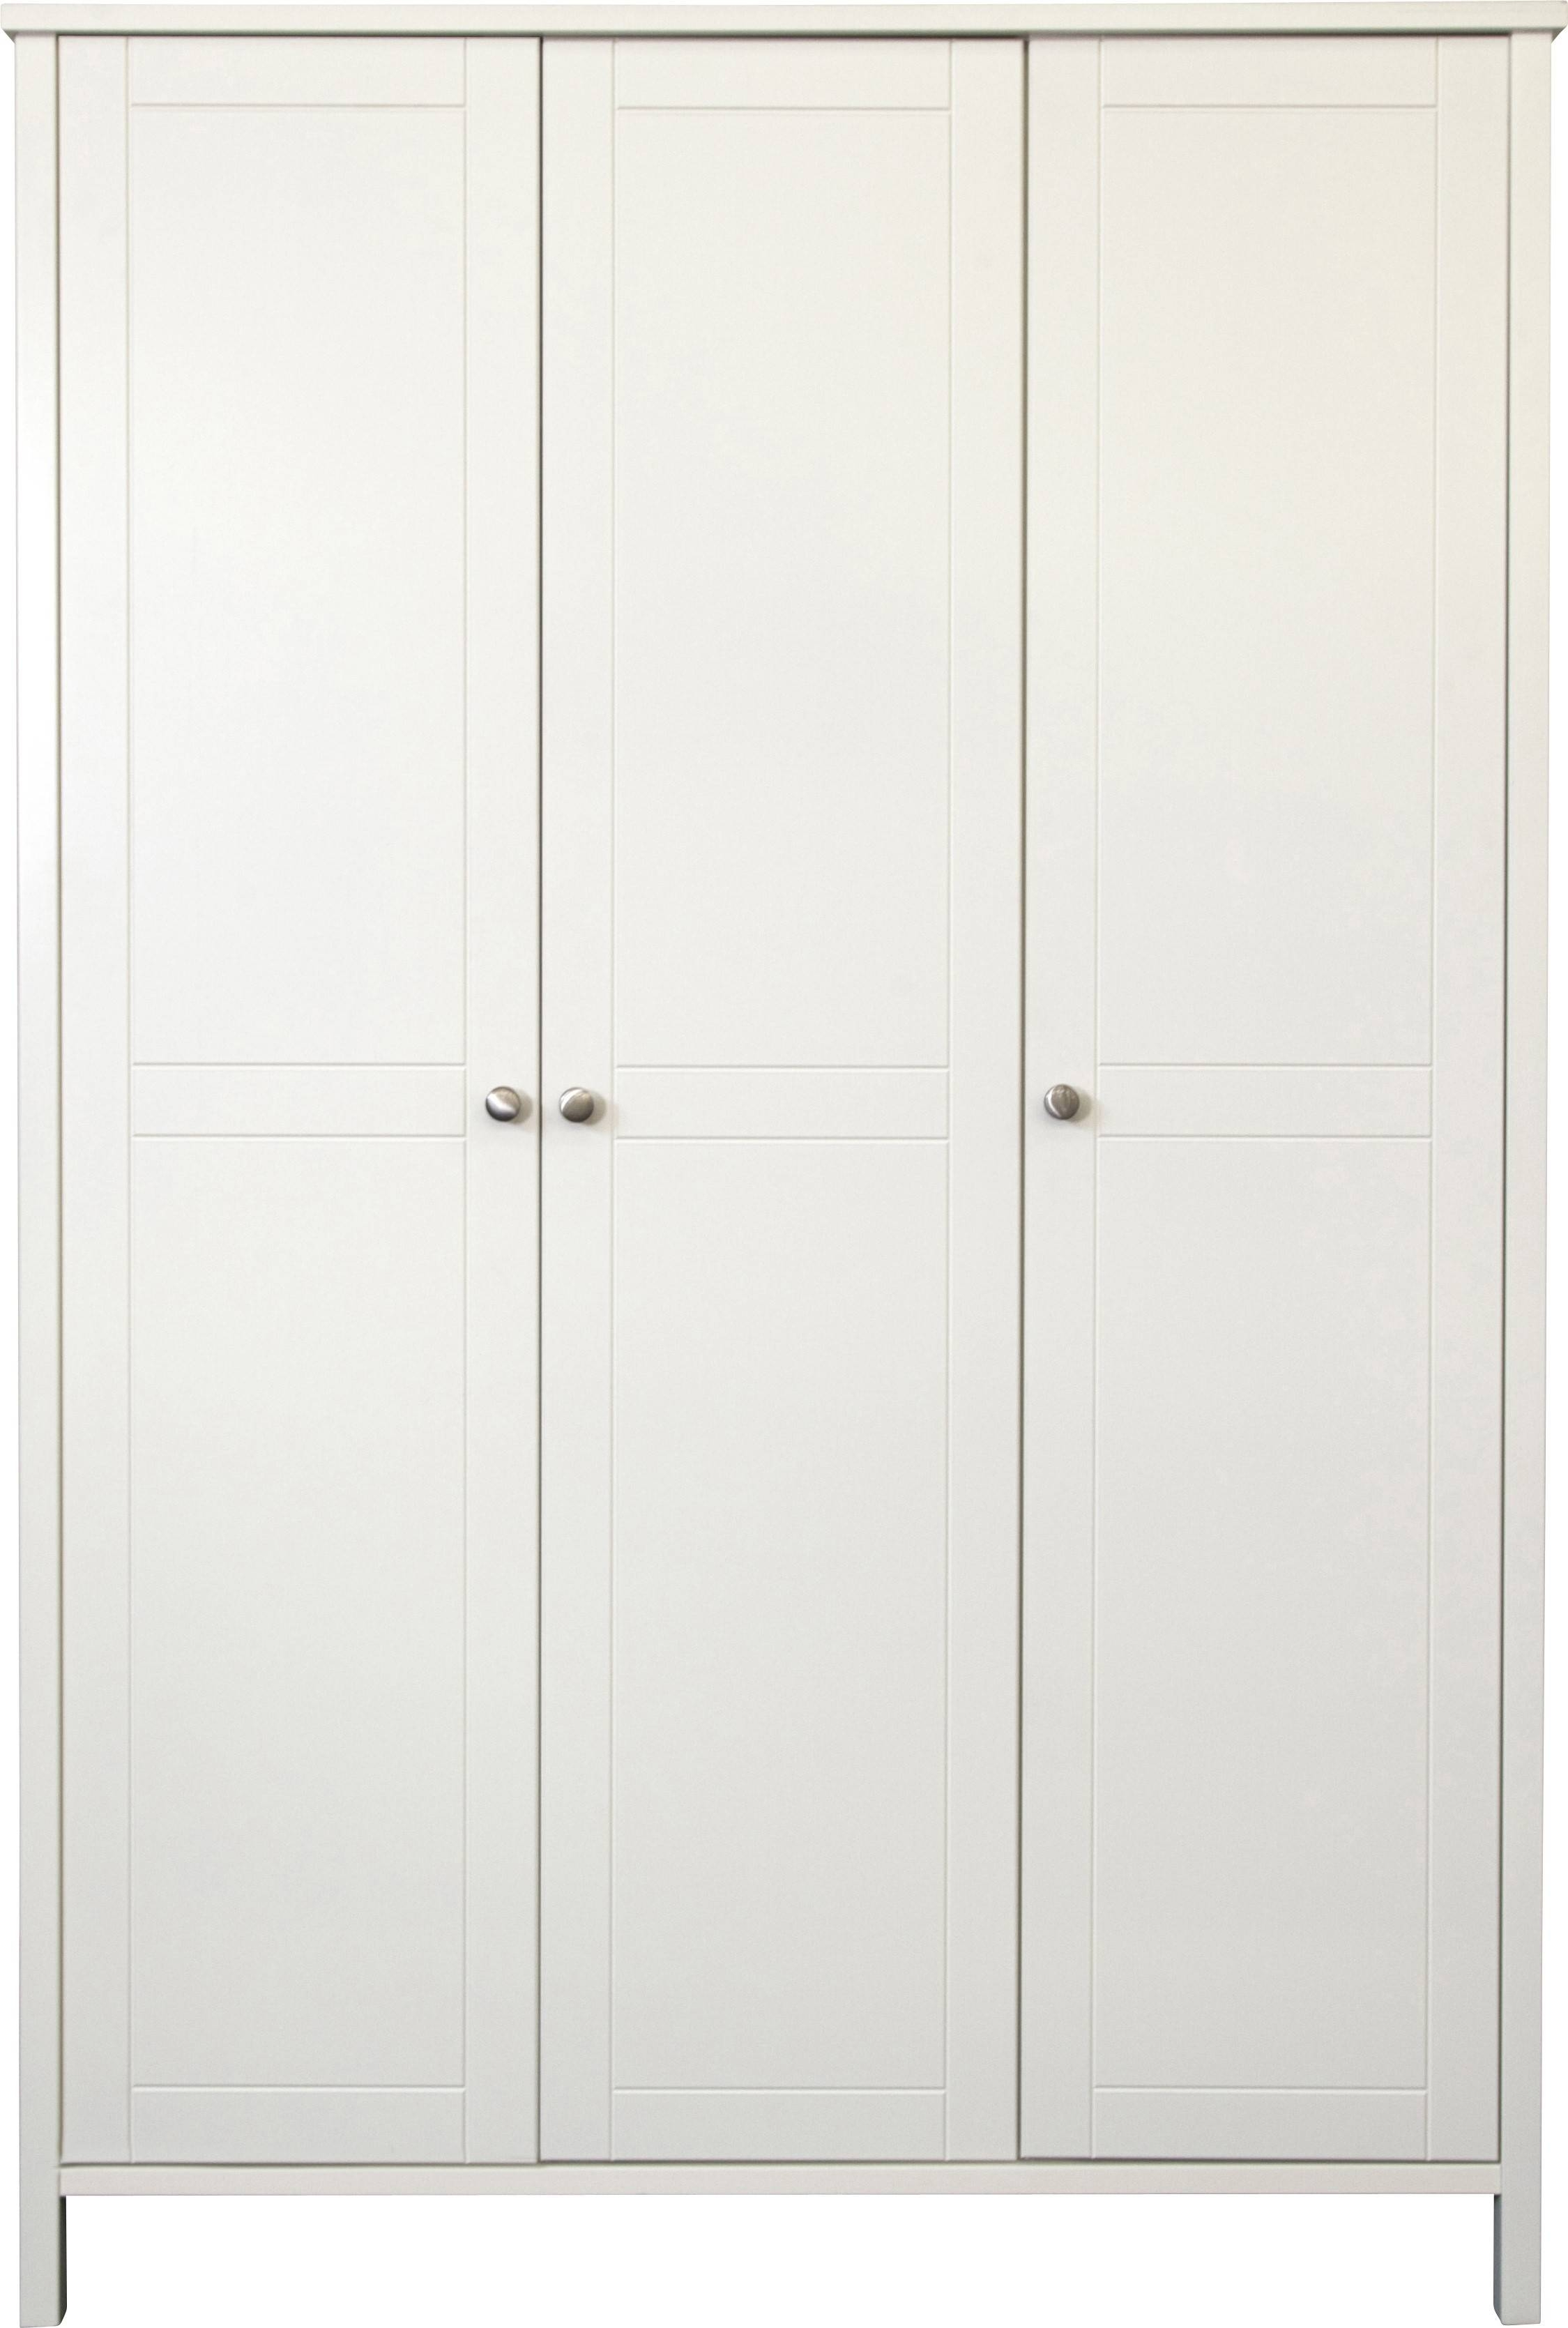 Stockholm White 3 Door Wardrobe | Bedroom Furniture Direct for 3 Door White Wardrobes (Image 25 of 30)